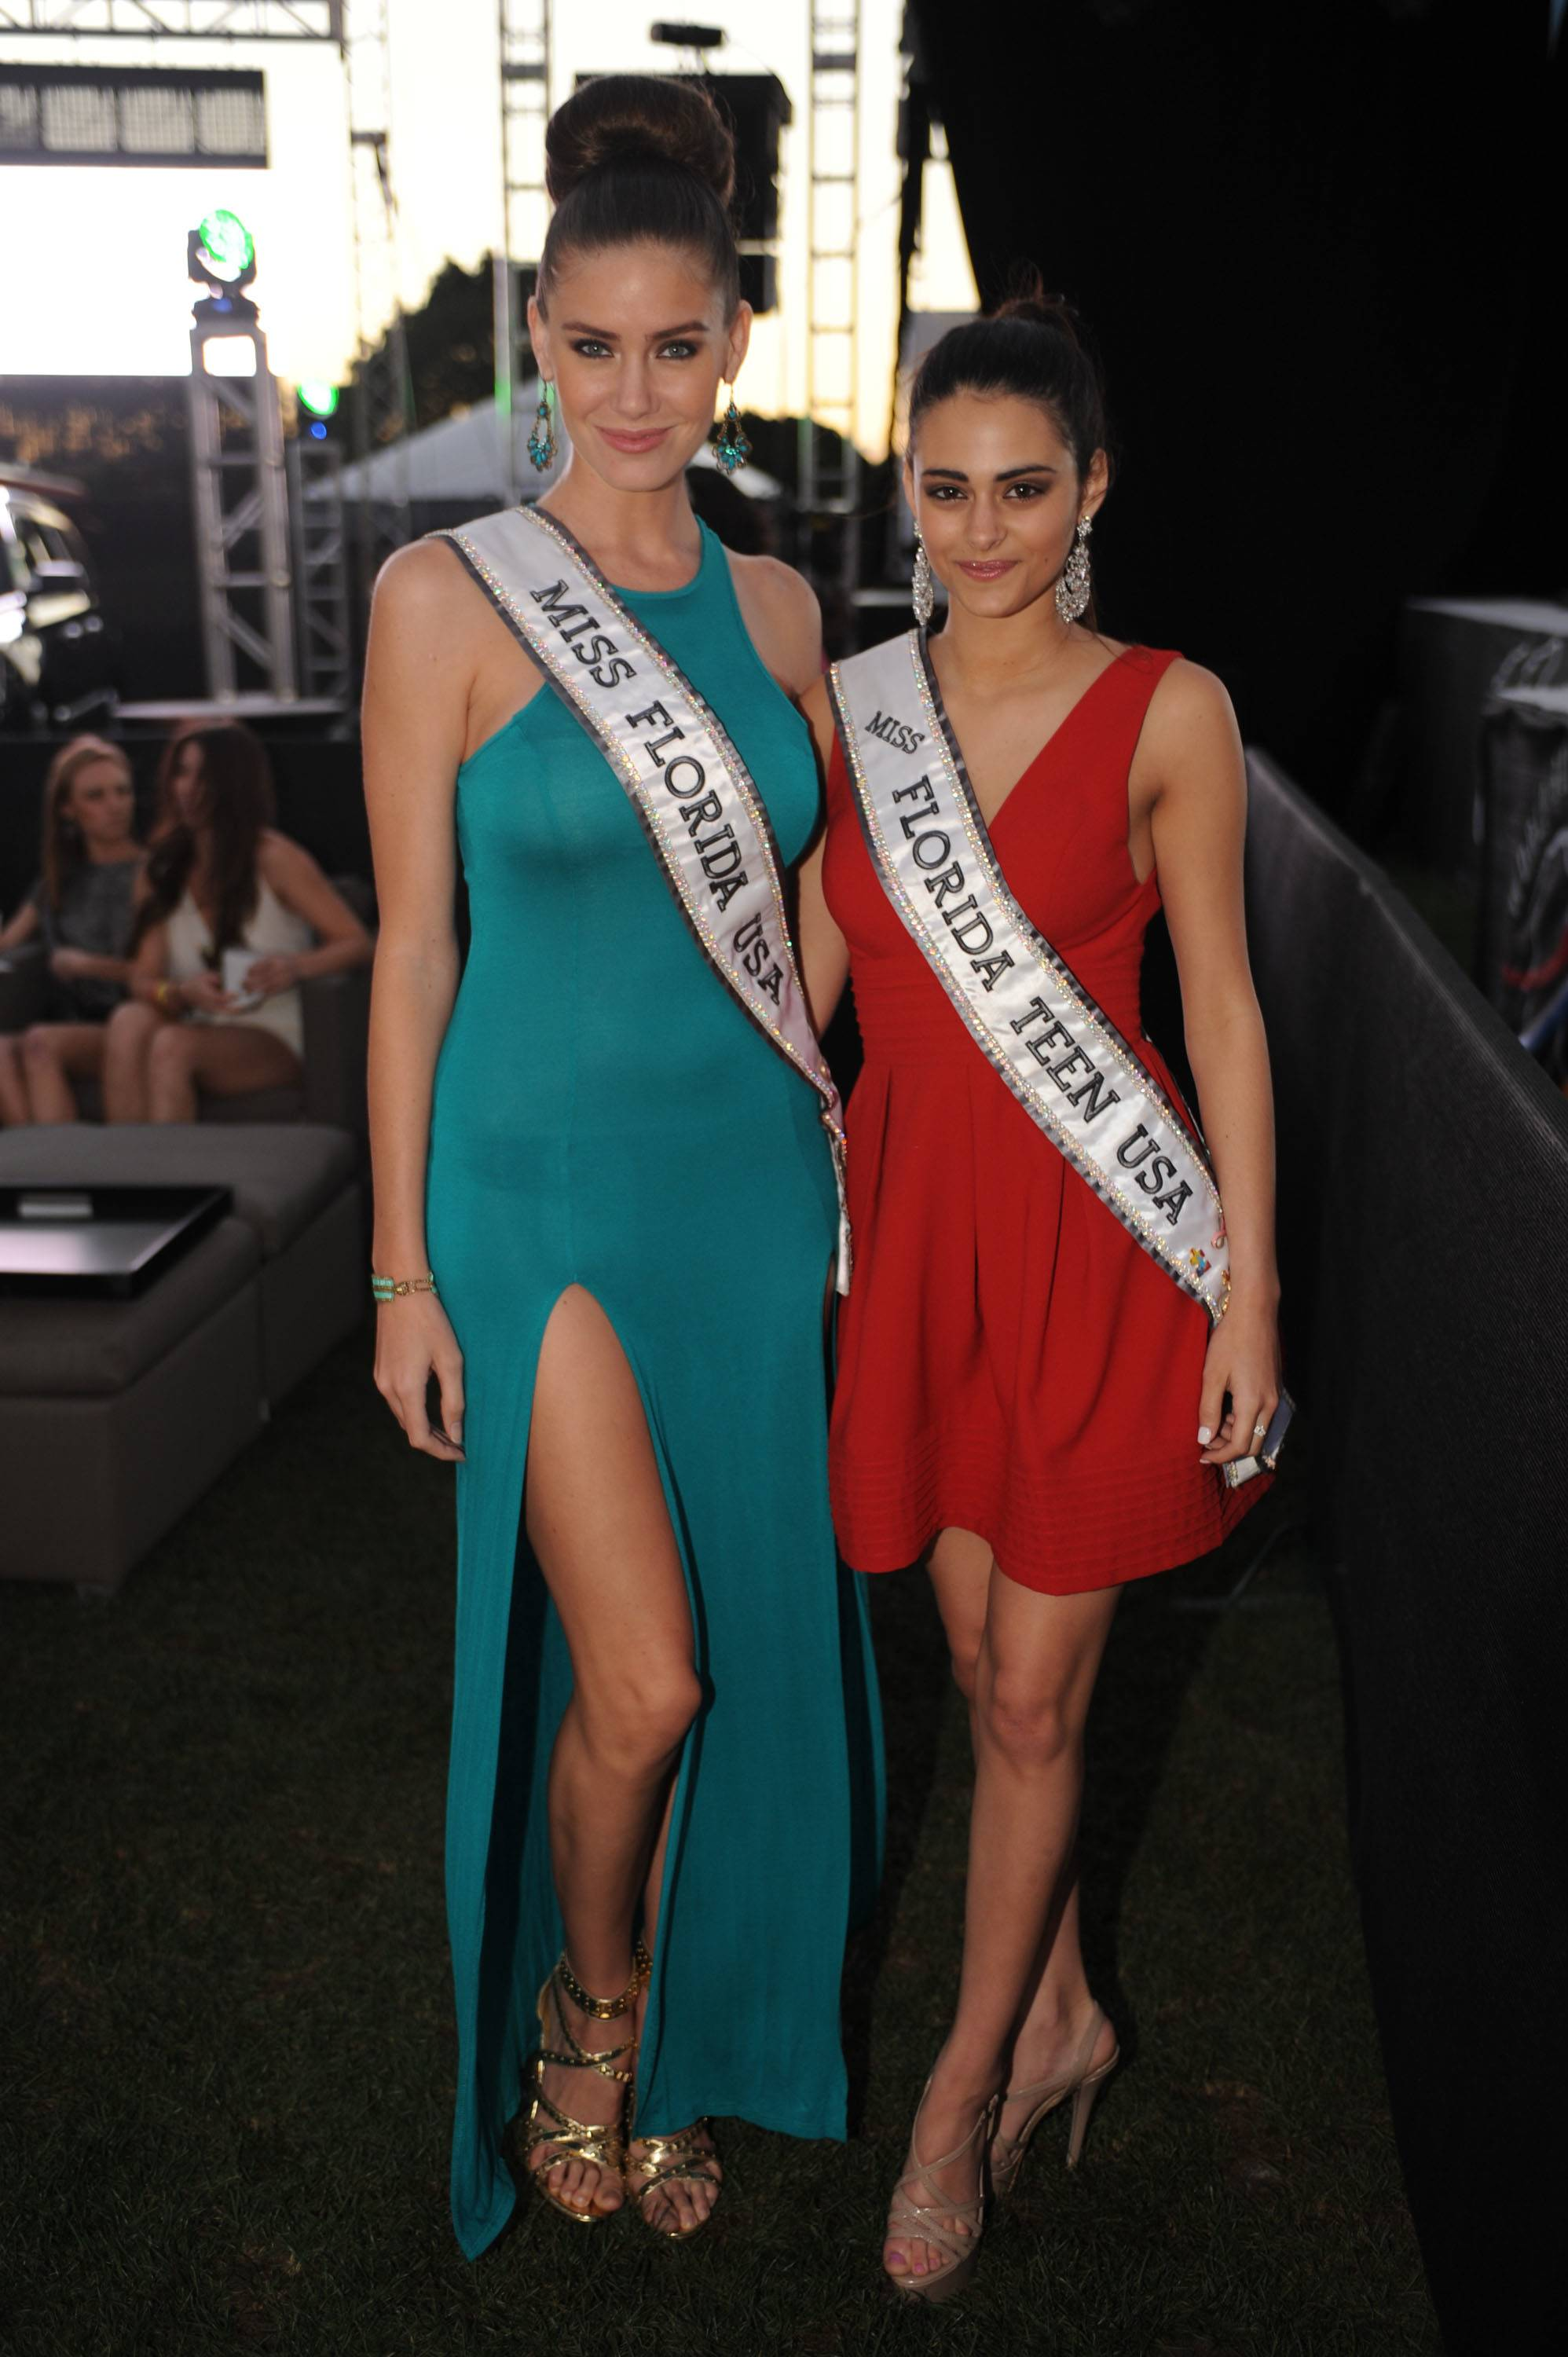 Miss Florida USA Brittany Oldehoff and Miss Florida Teen USA Natalie Fiallo